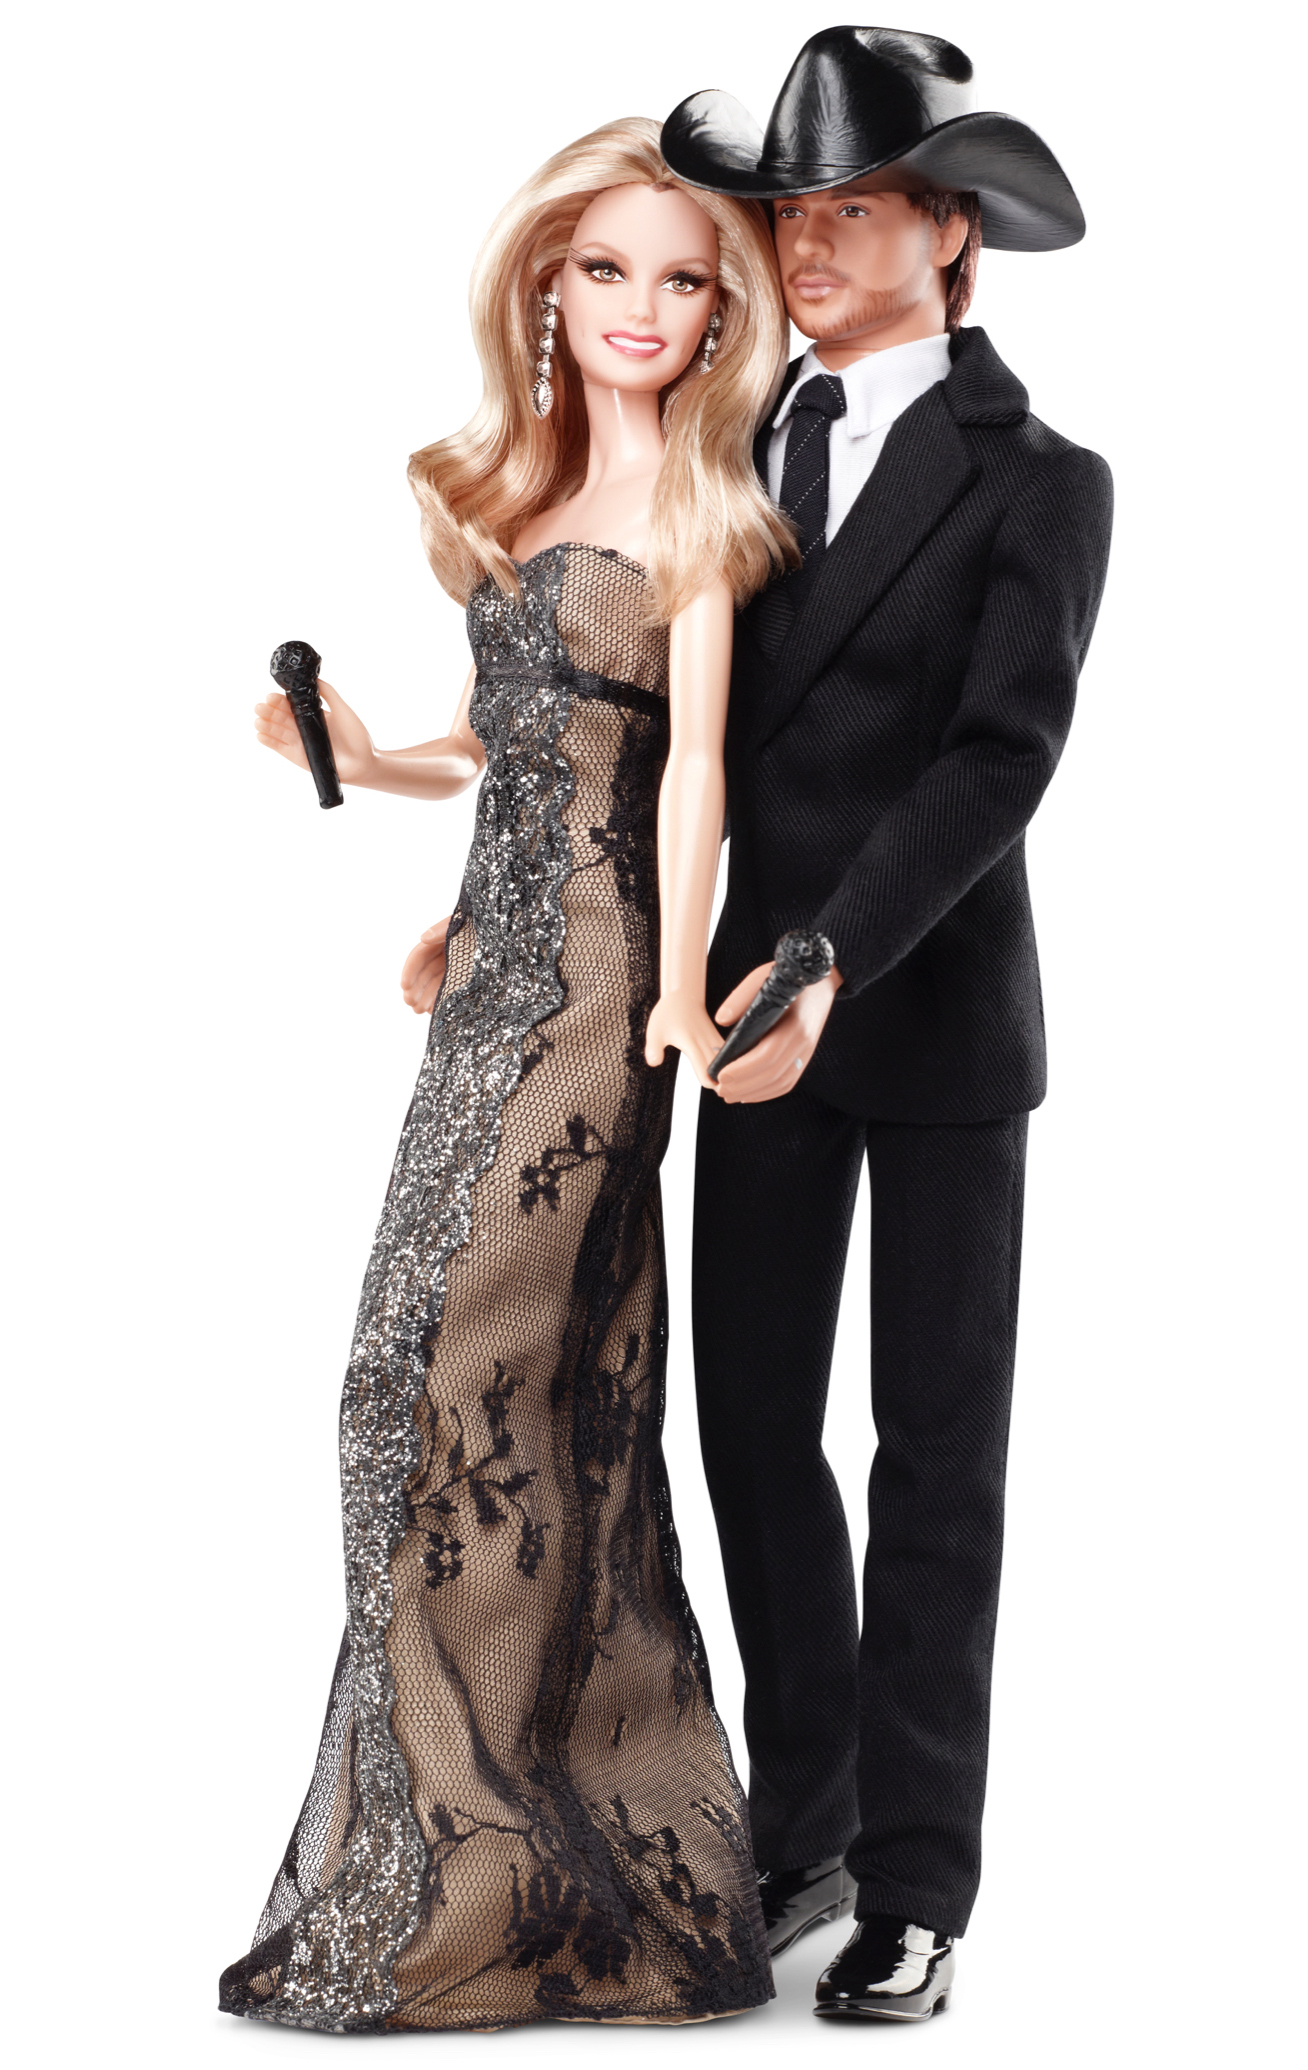 Faith Hill and Tim McGraw Barbies, released in 2011.